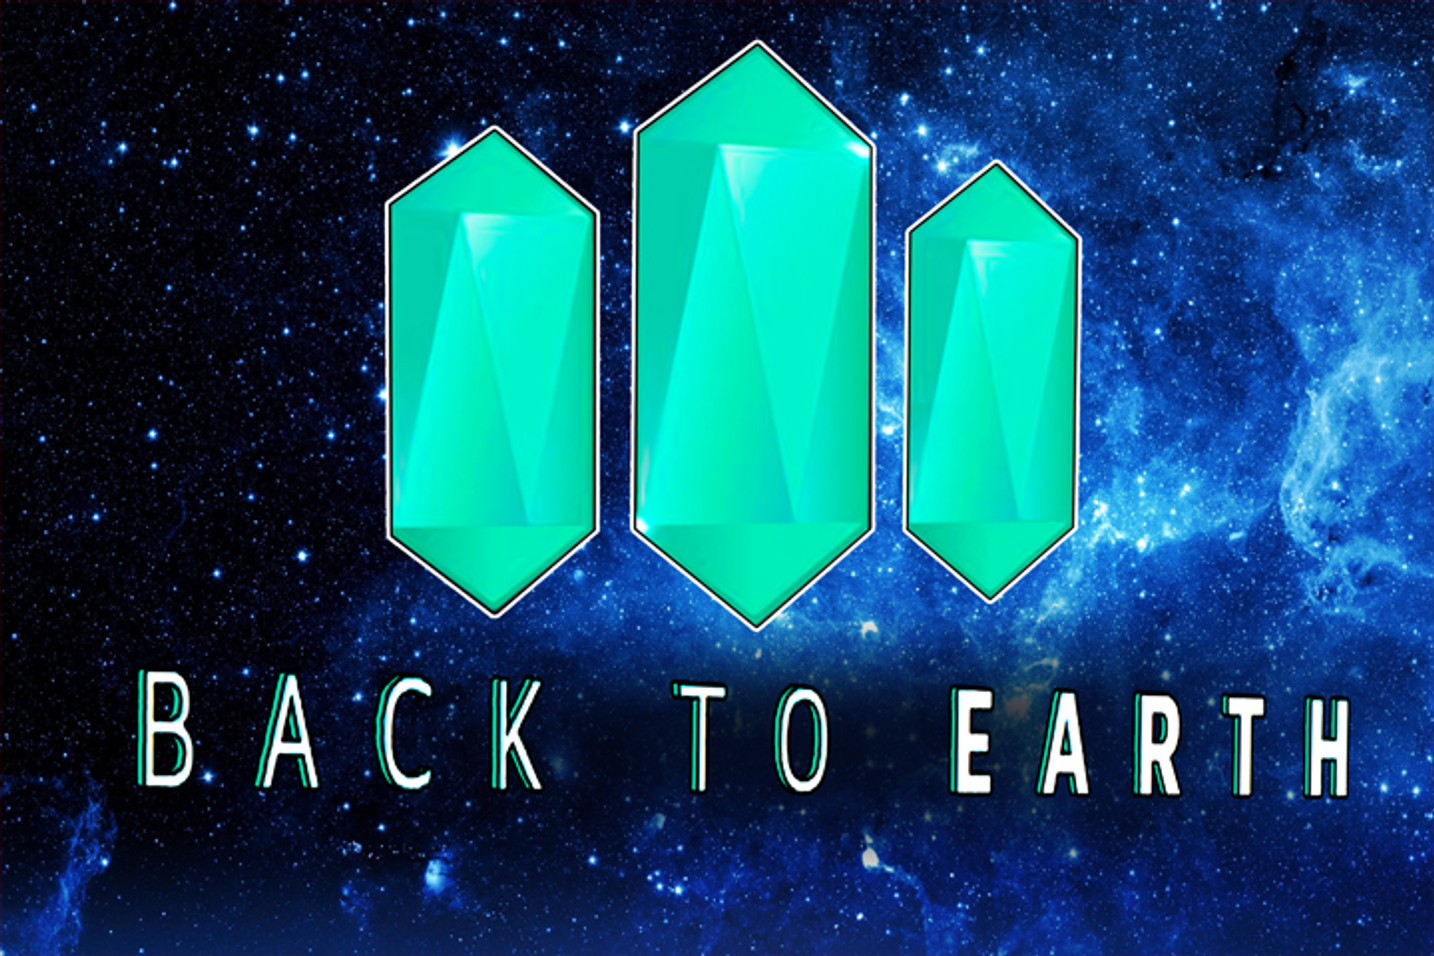 Back to Earth – The Most Elusive Crowdfund in Crypto